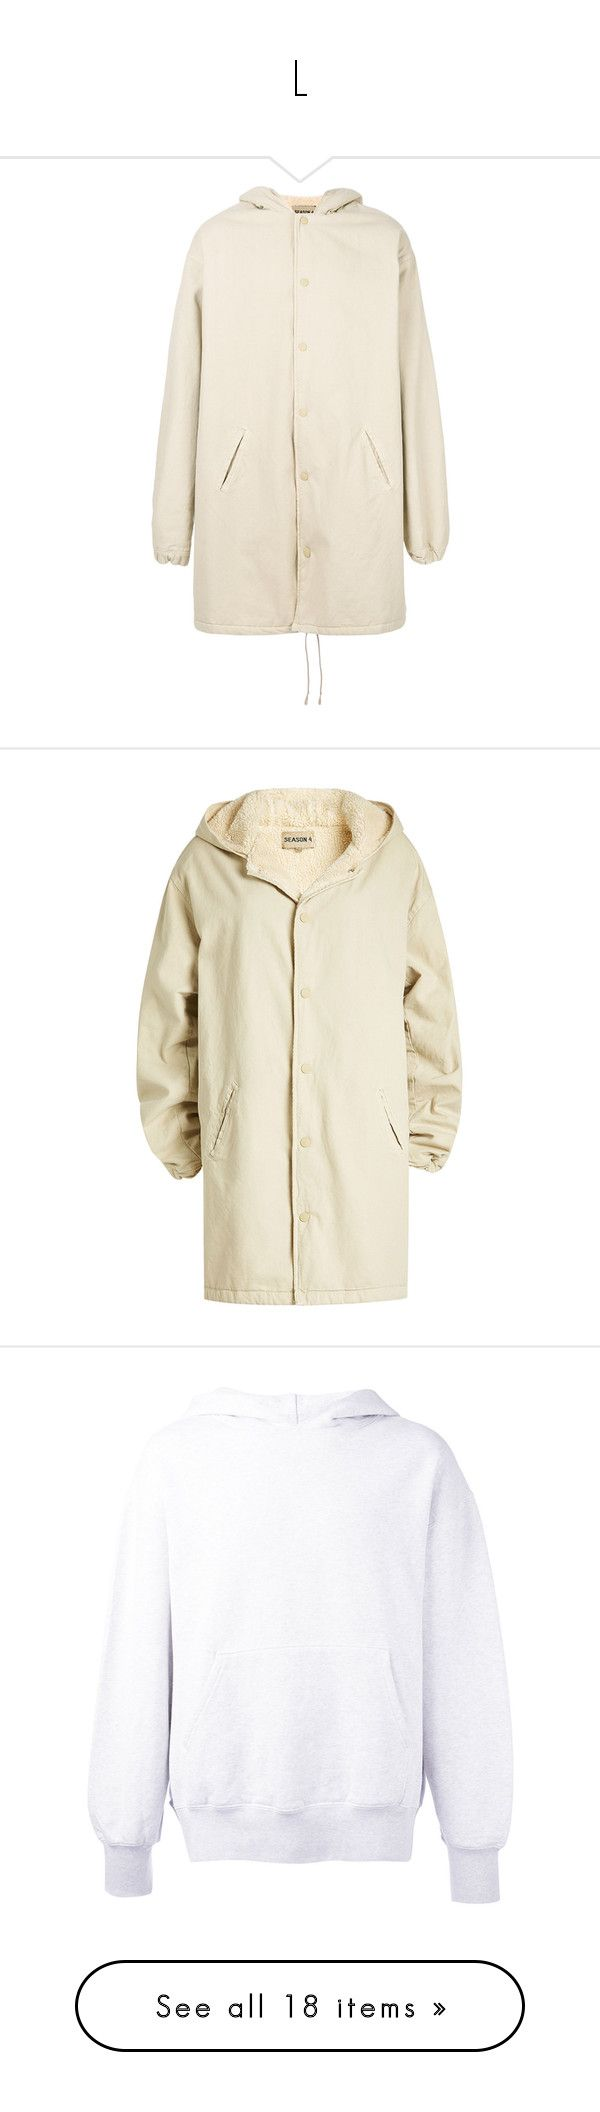 """""""L"""" by lalremsang ❤ liked on Polyvore featuring outerwear, jackets, coach jacket, hooded jacket, beige, oversized hooded jacket, oversized parka jacket, cotton hooded jacket, beige jacket and oversized jacket"""